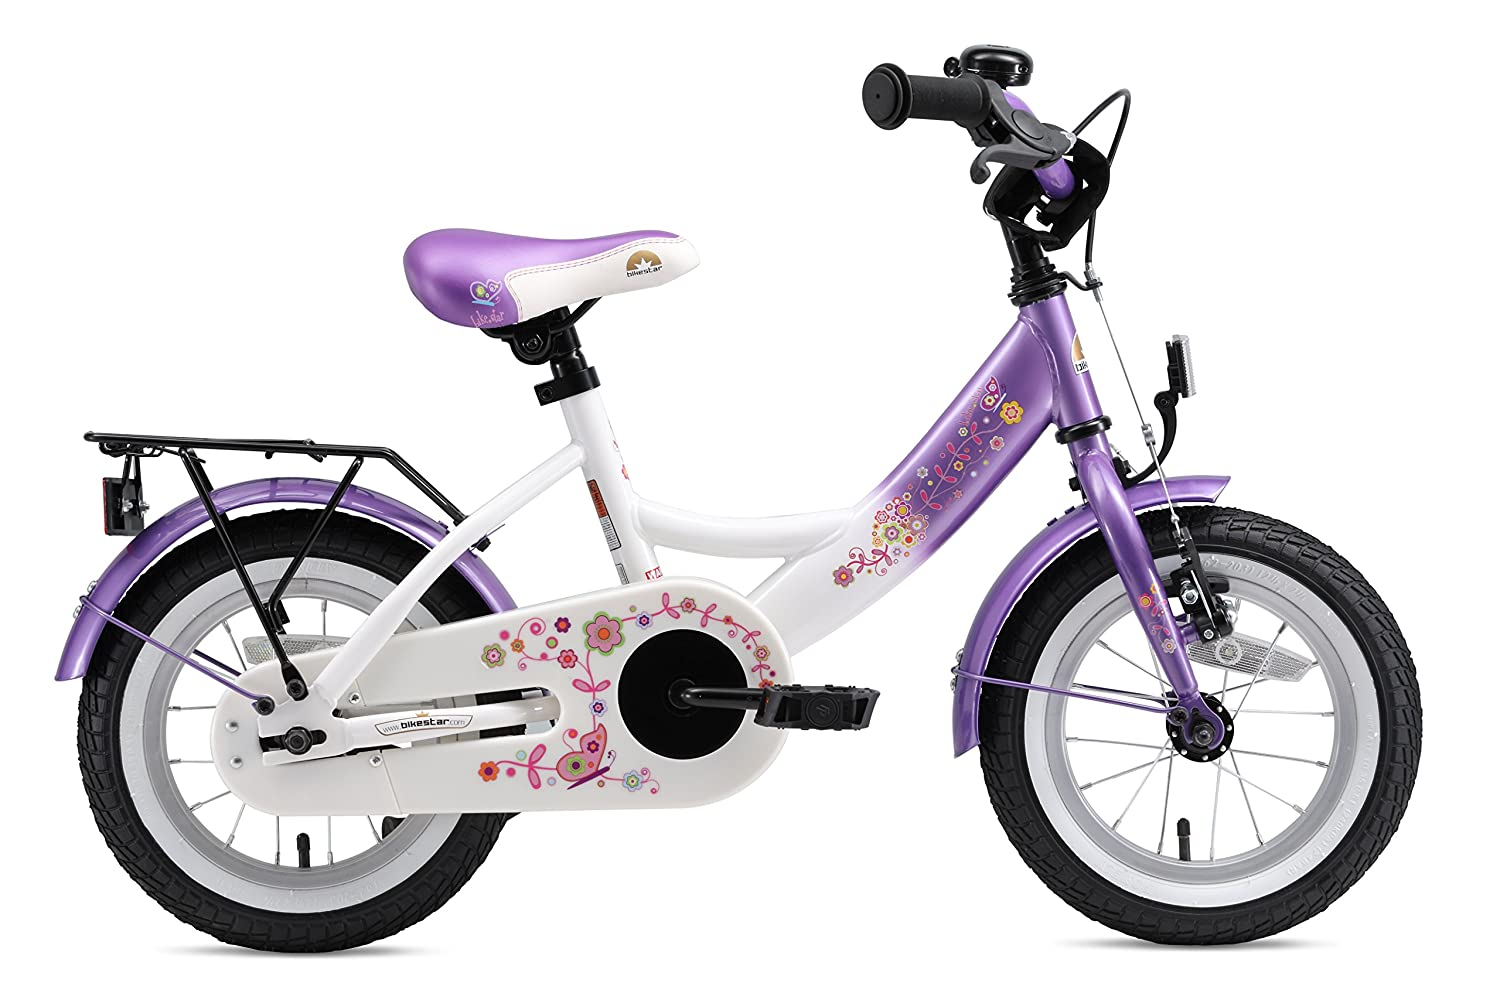 BIKESTAR Safety Sport Kids Bike Bicycle with sidestand and Accessories for Kids Age 3 Year Old Children 12 Inch Classic Edition for Boys and Girls